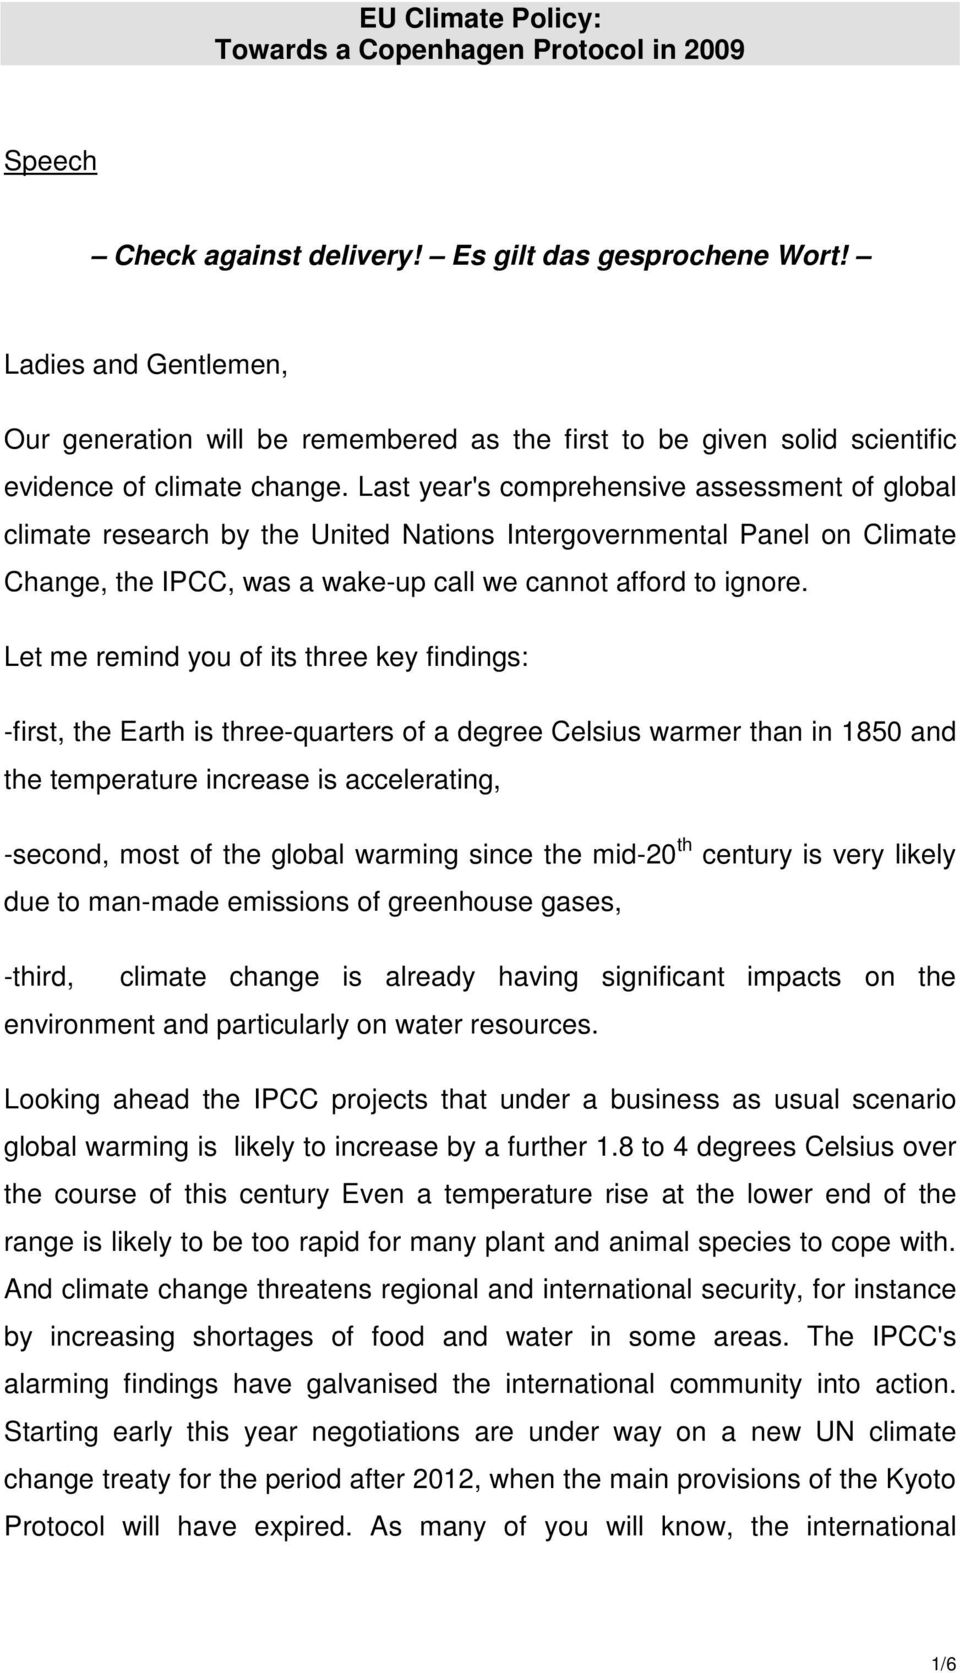 Last year's comprehensive assessment of global climate research by the United Nations Intergovernmental Panel on Climate Change, the IPCC, was a wake-up call we cannot afford to ignore.